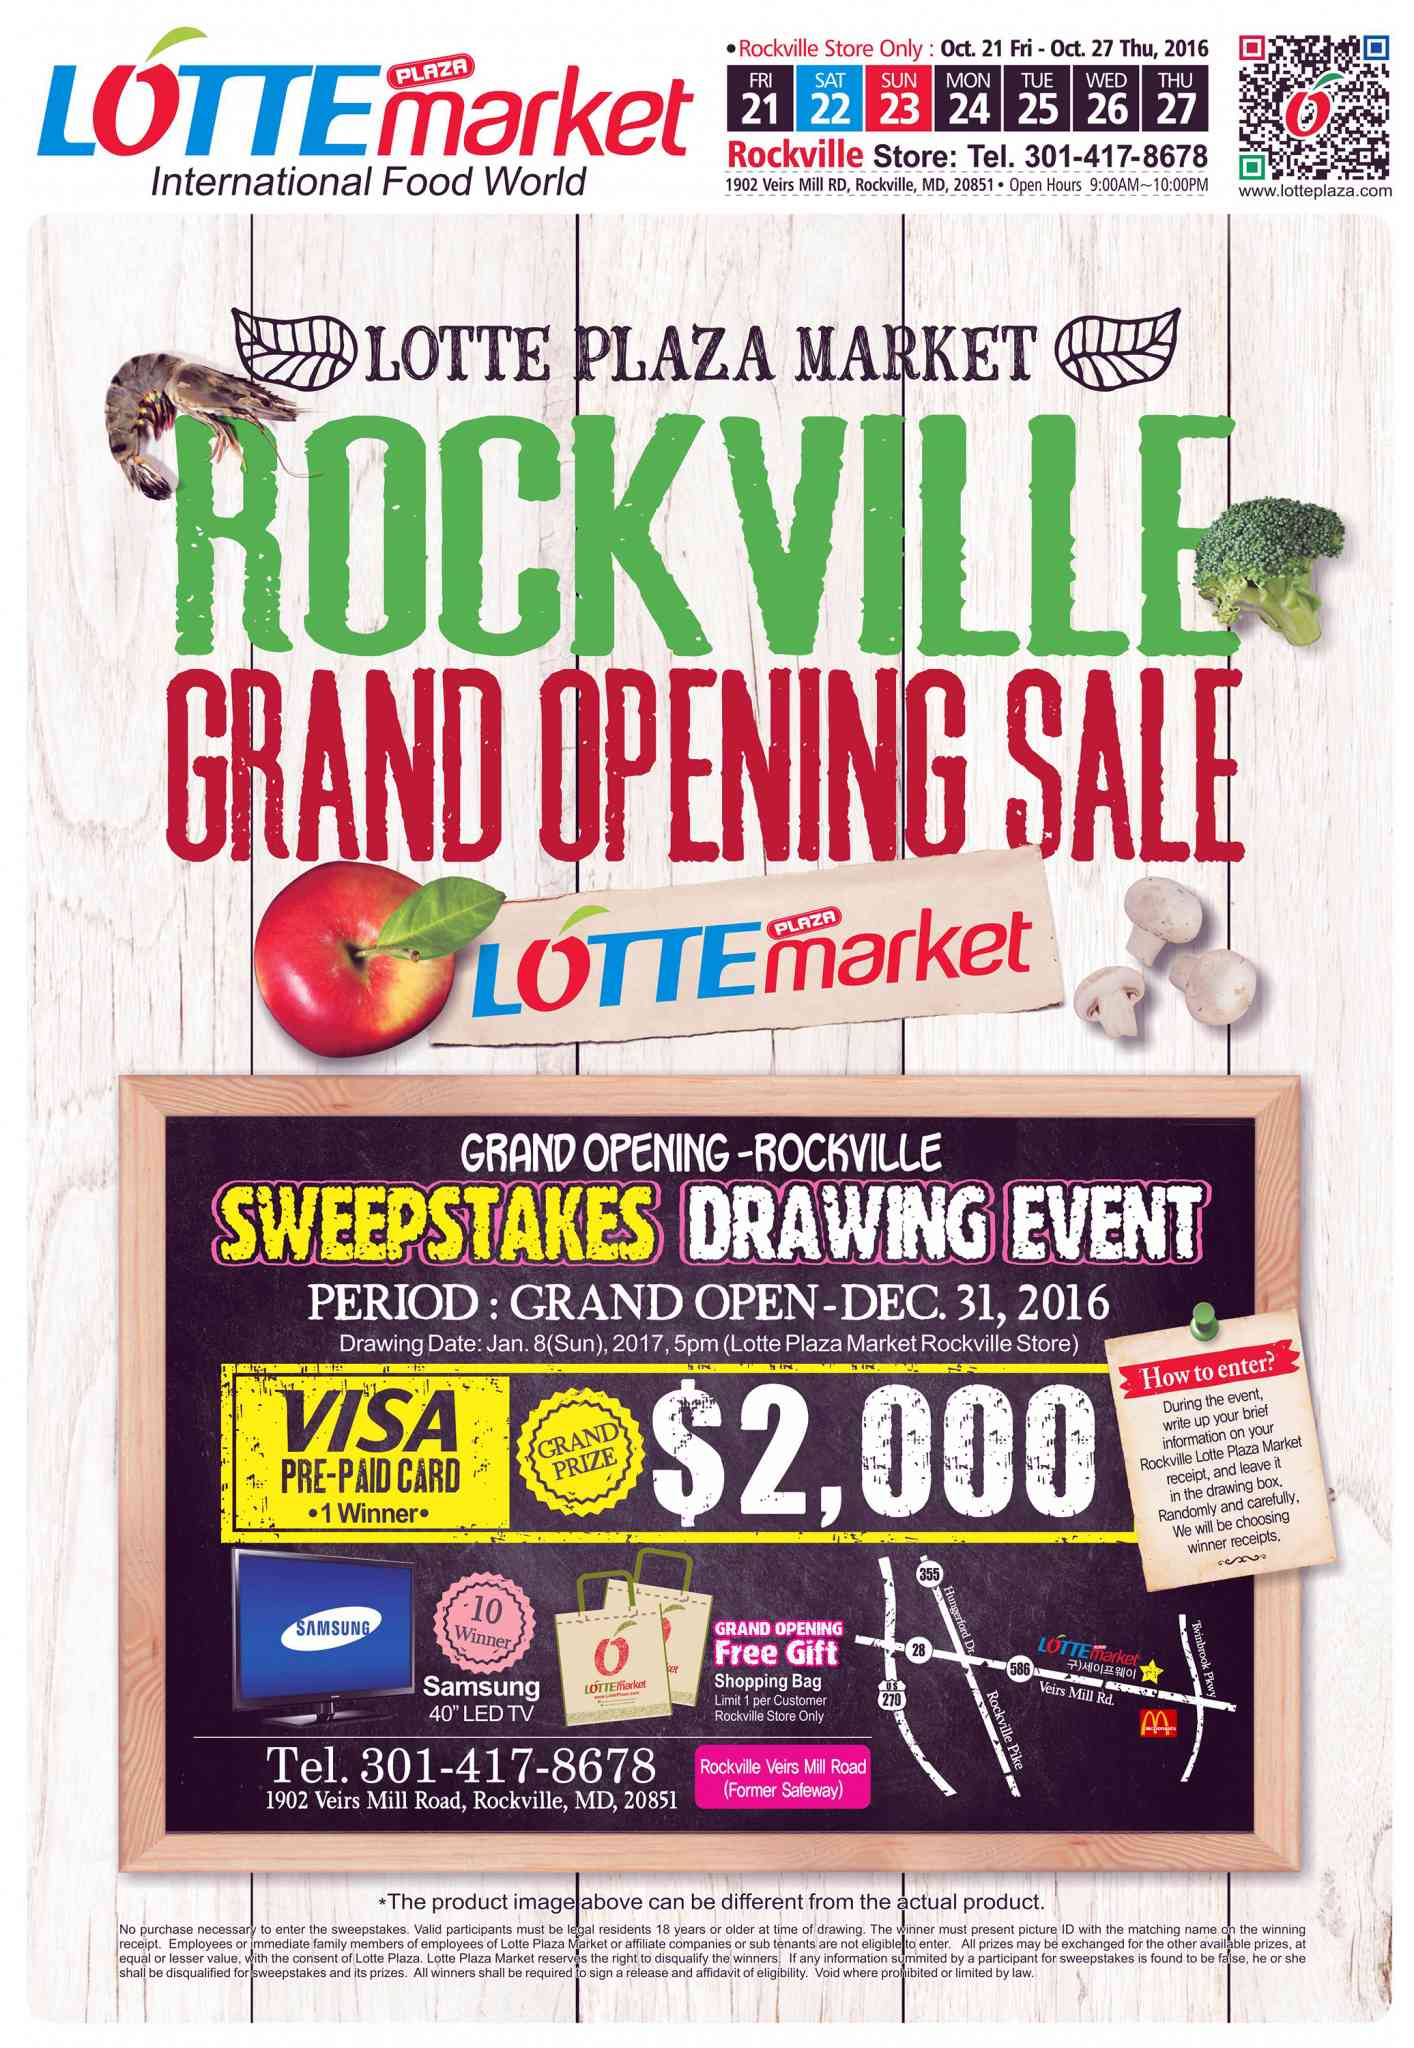 Rockville Sweepstakes